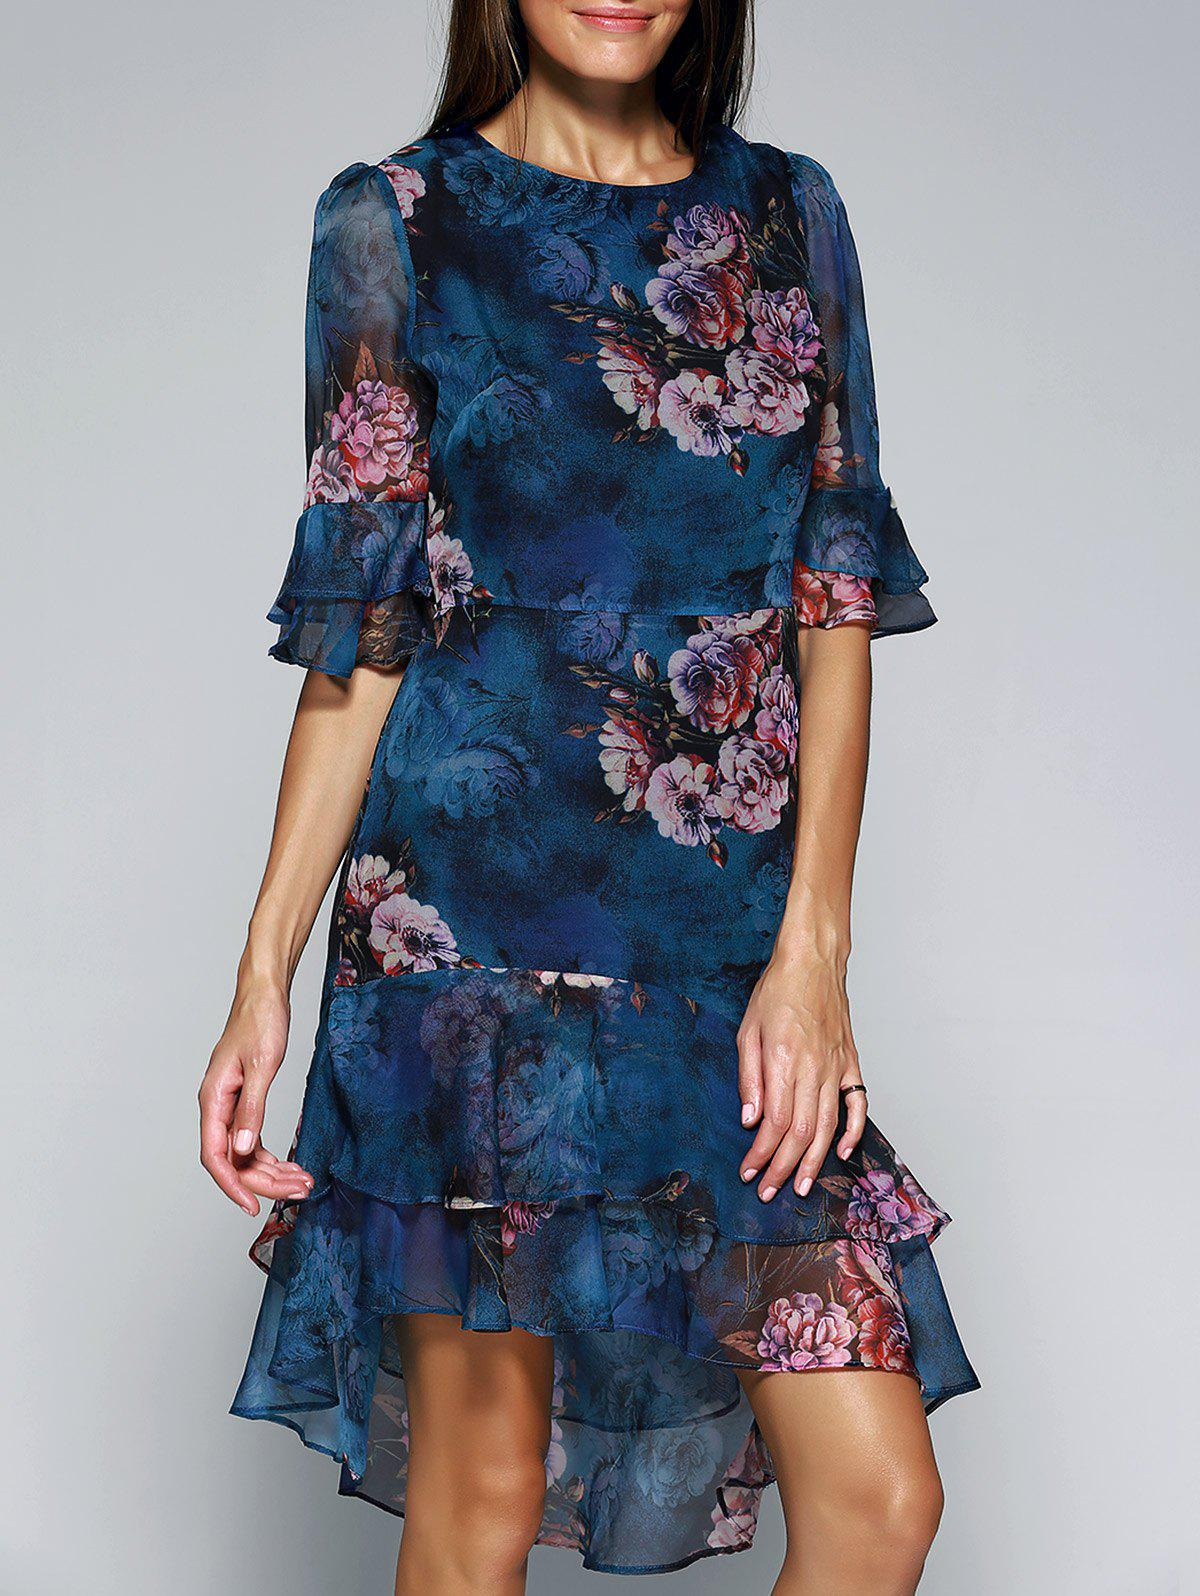 Ornate Layered Floral Chiffon Dress For Women - BLUE L